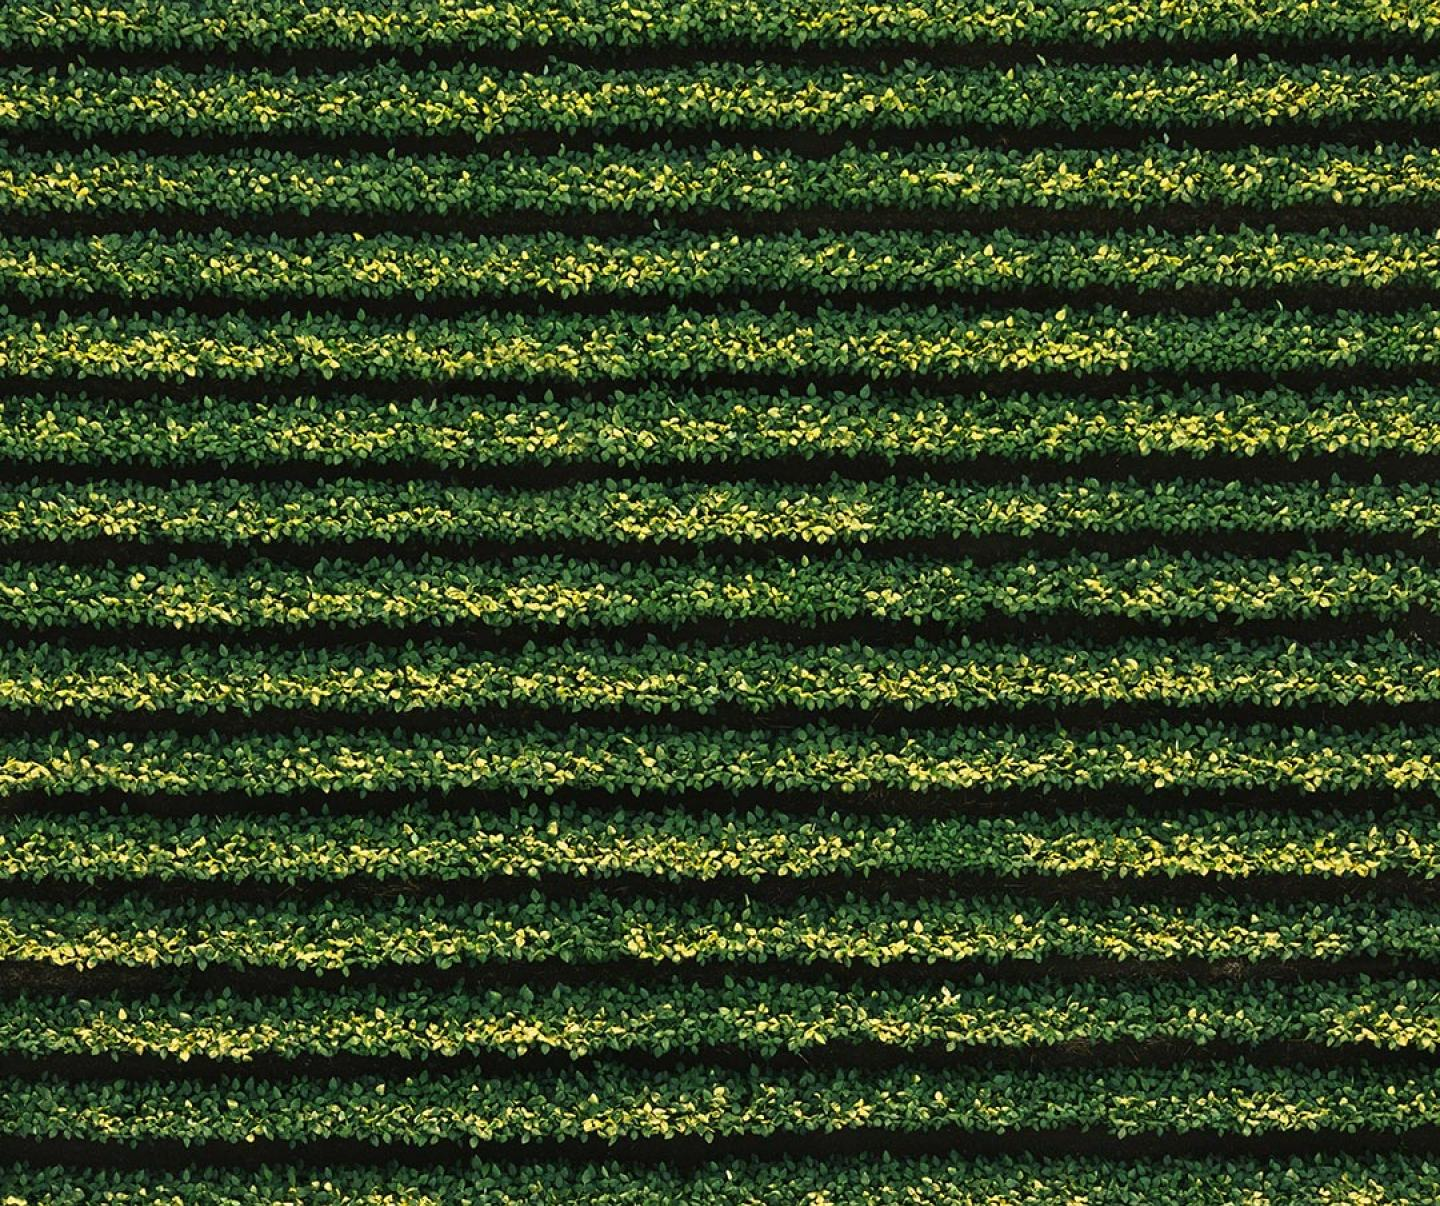 Aerial view of soybean rows